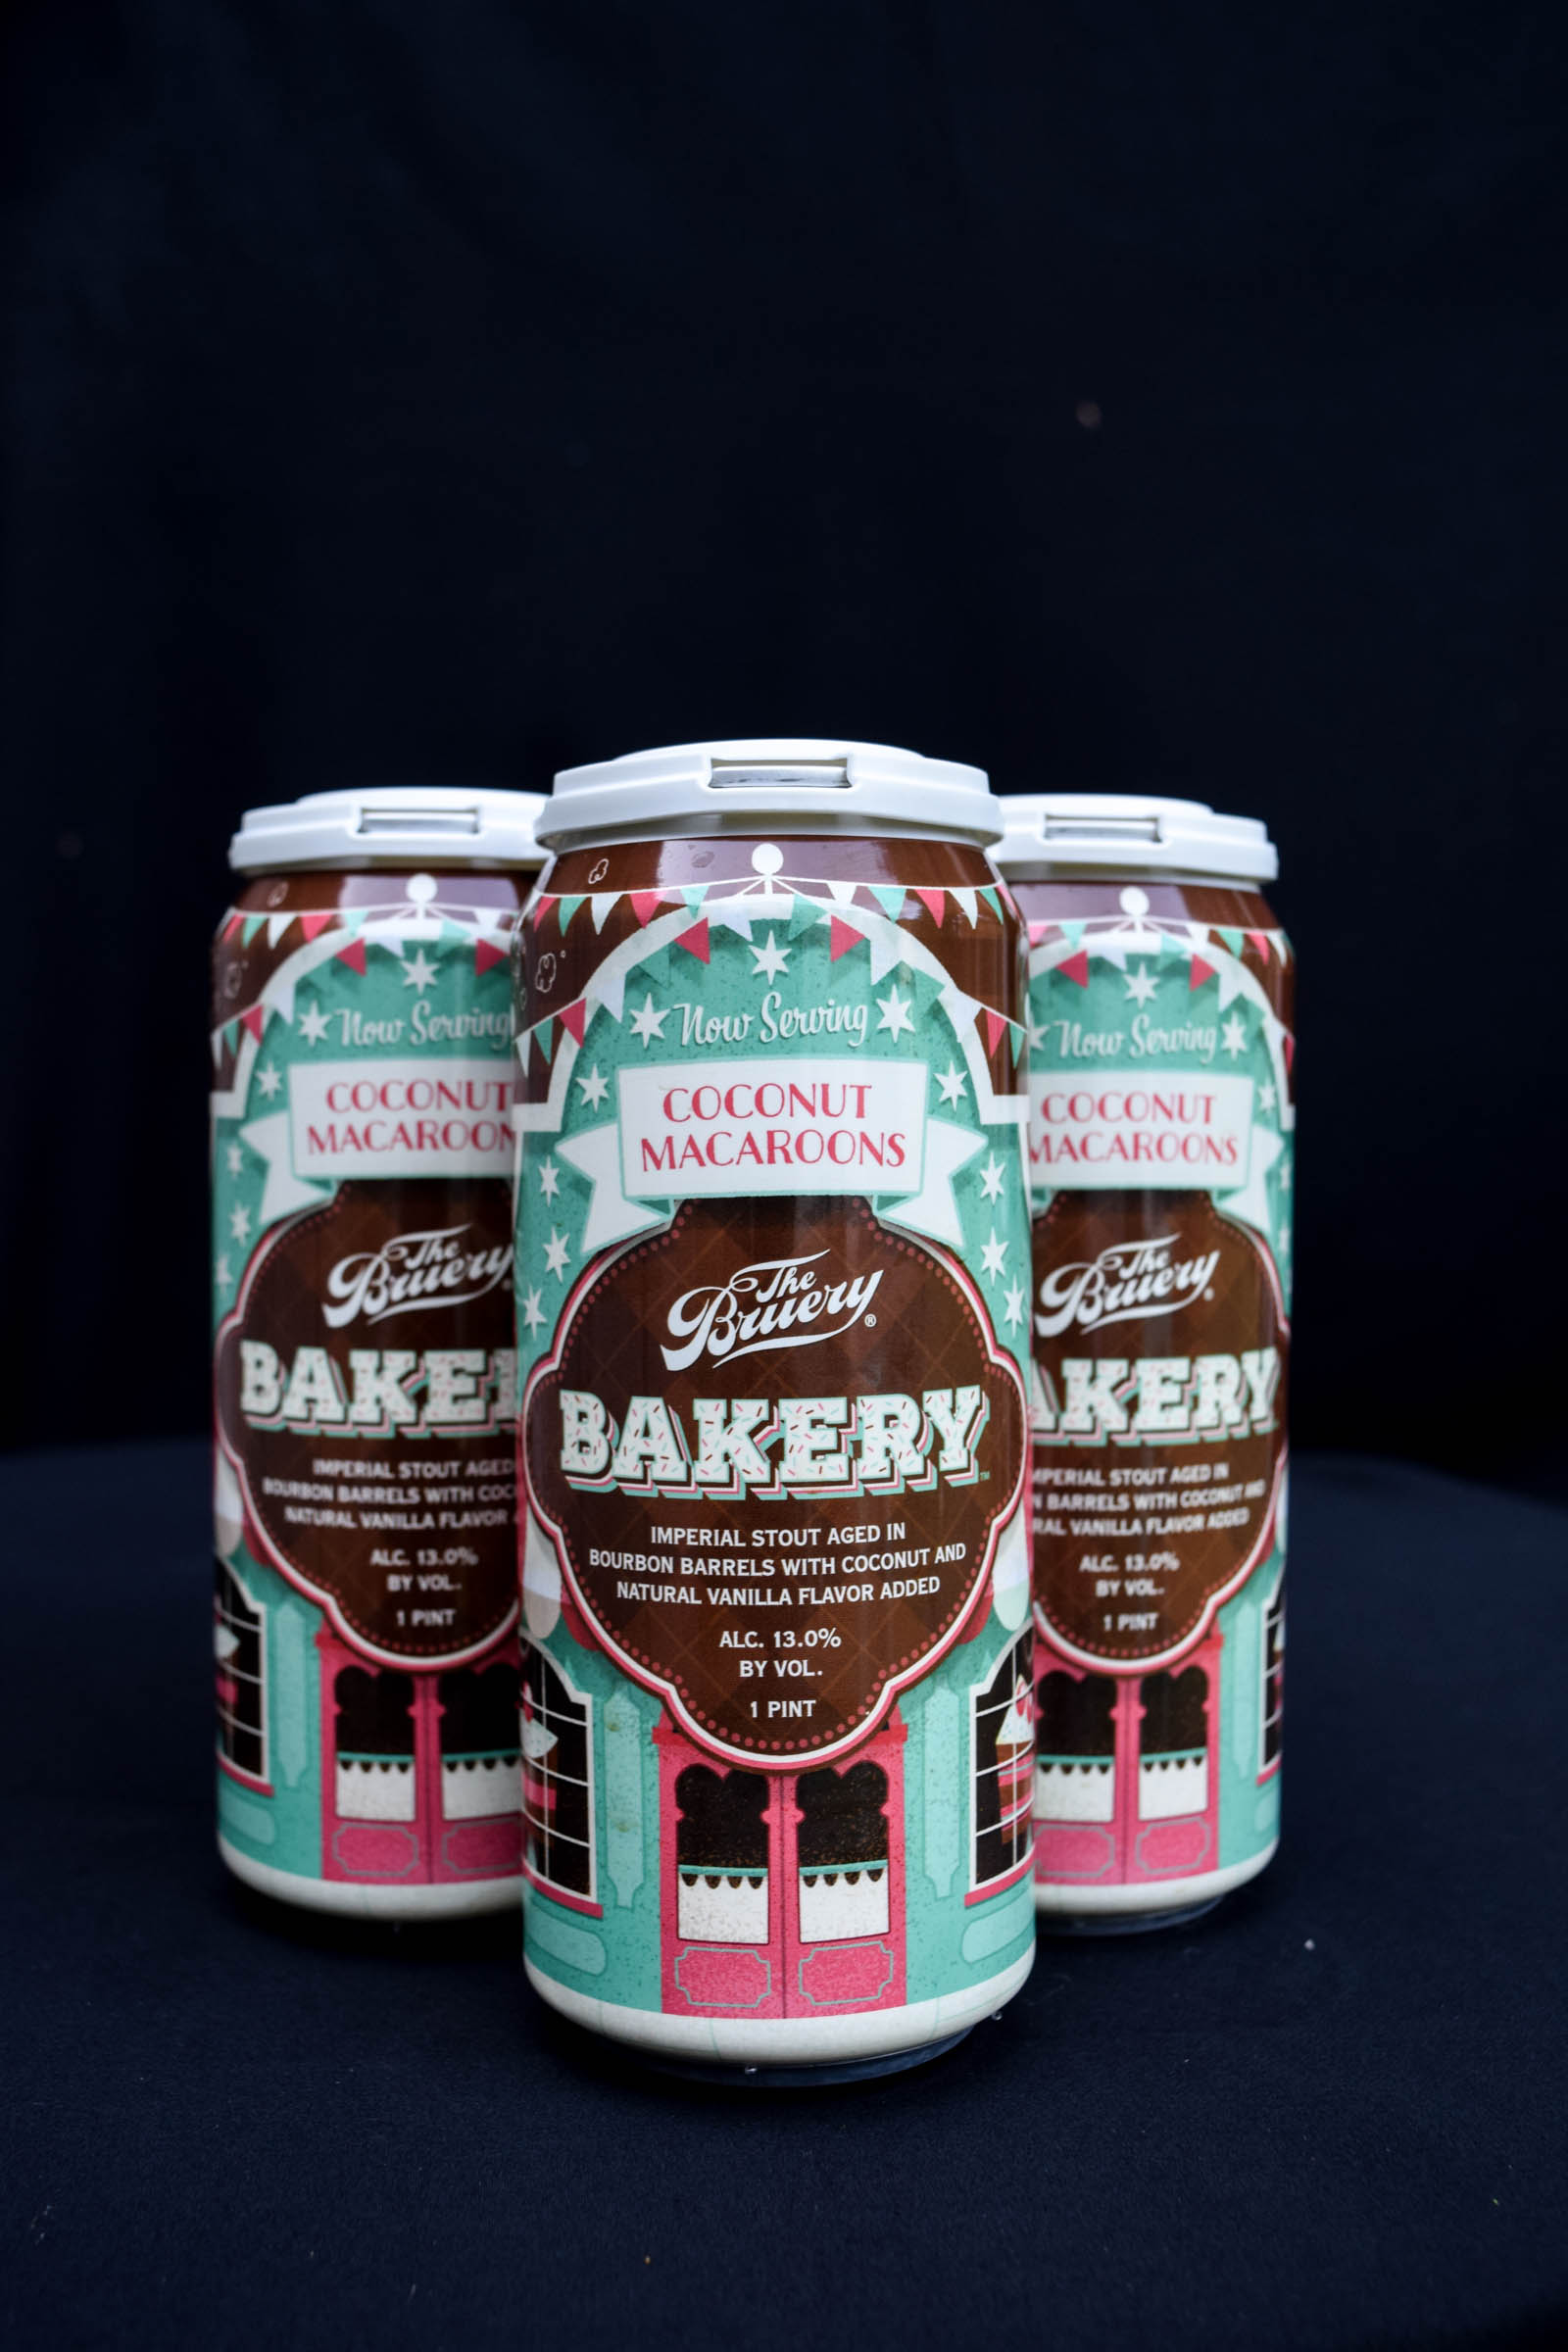 Buy The Bruery Bakery: Coconut Macaroon Imperial Stout Online